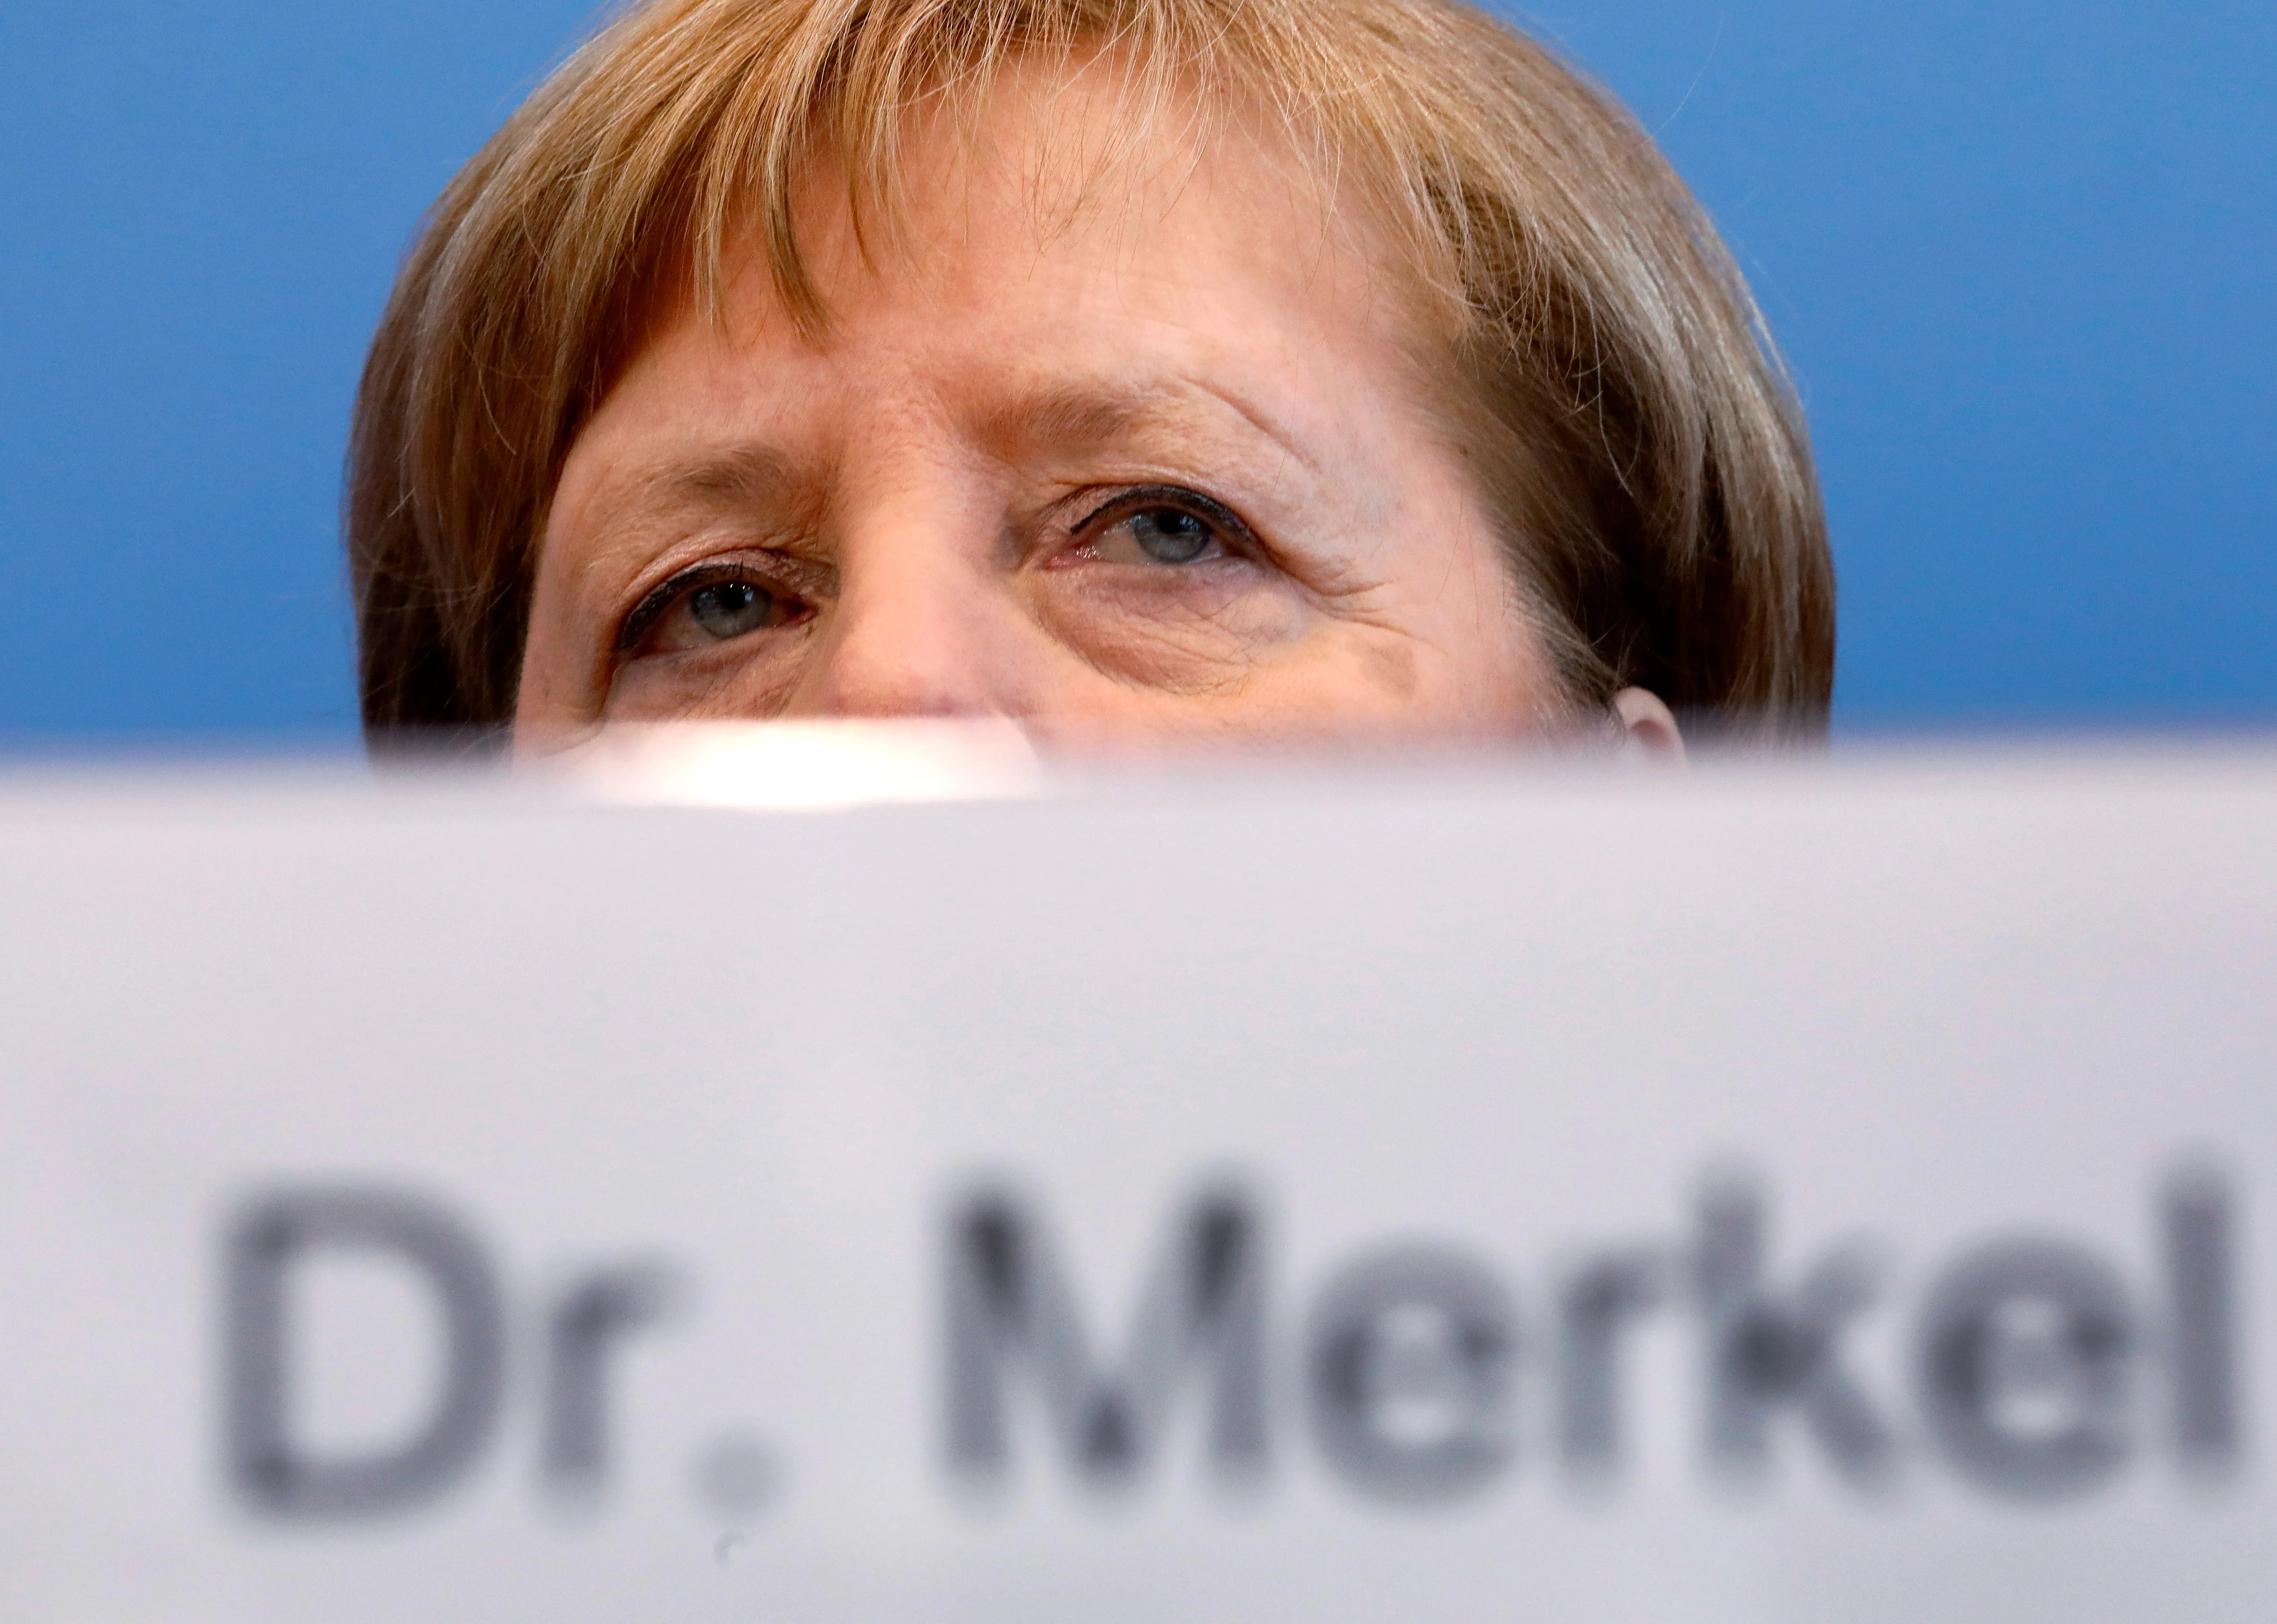 The Latest: Merkel: Virus will infect up to 70% of Germans | WBEN ...